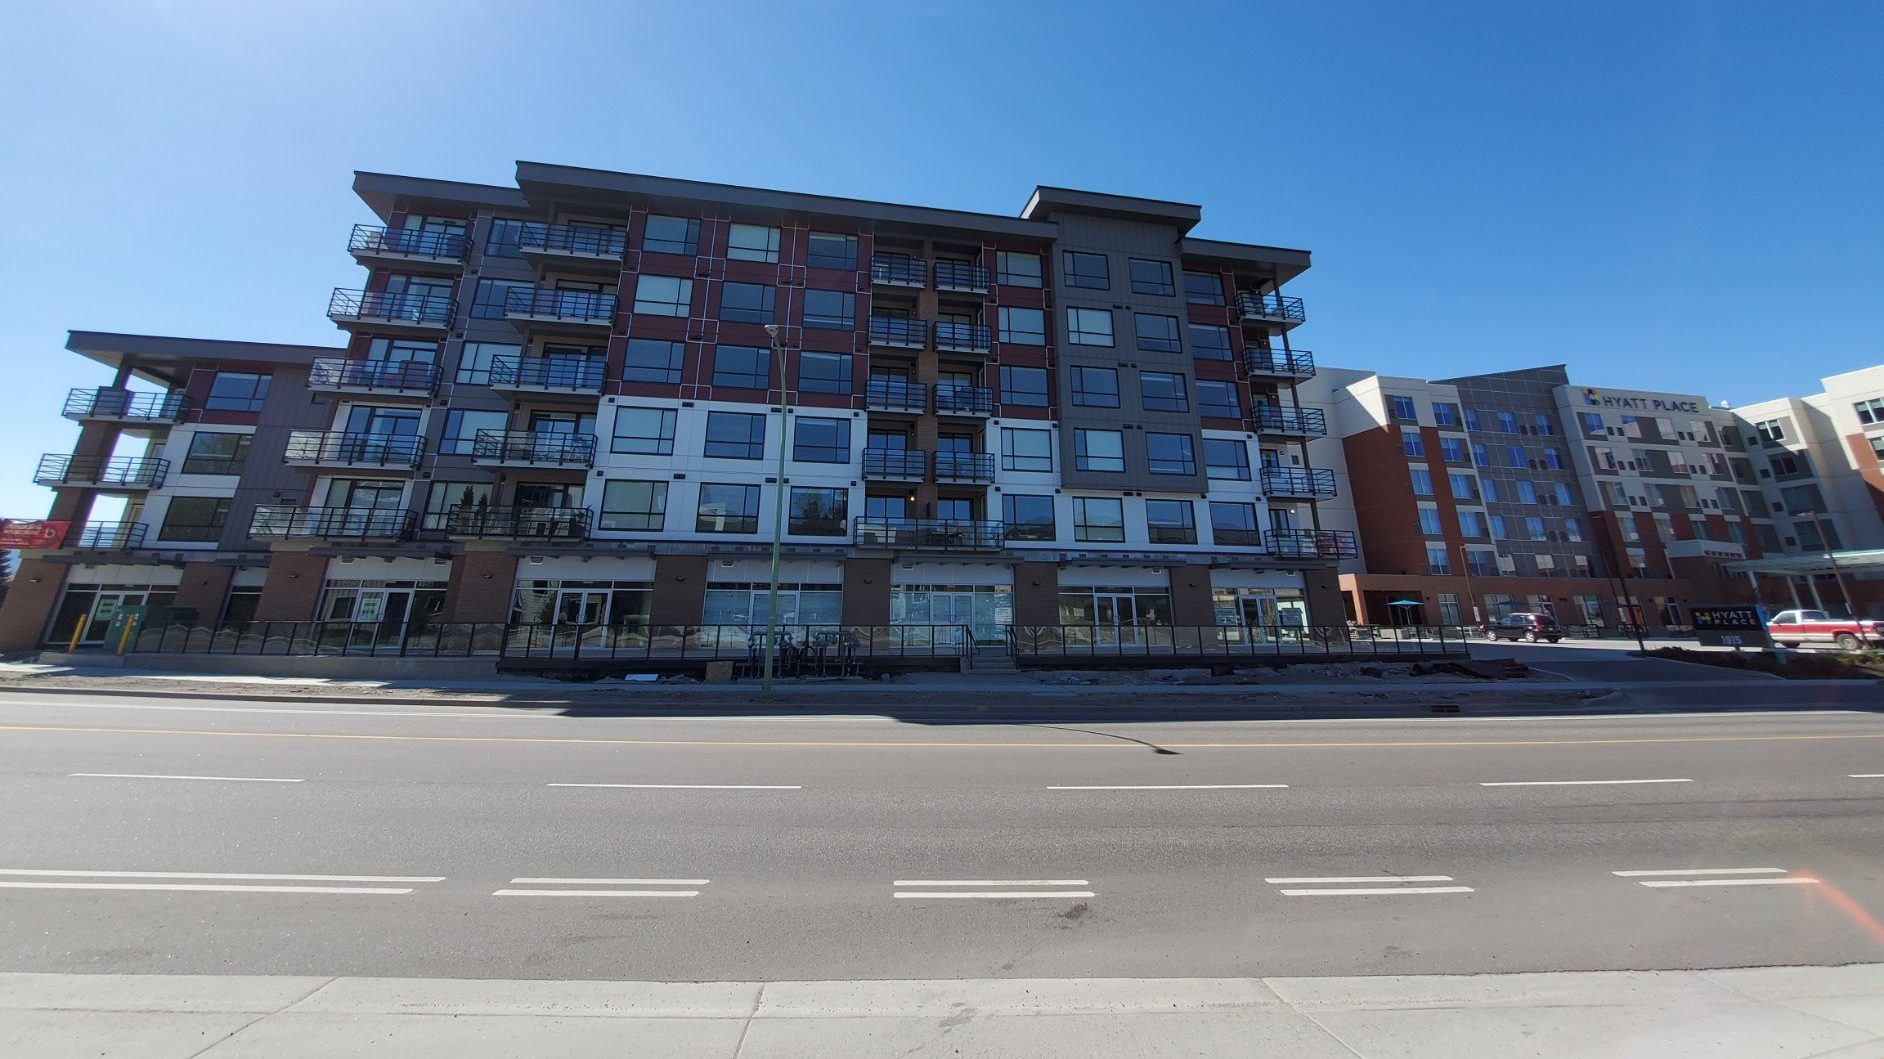 1925 Enterprise Way, Kelowna, BC - Retail Strata Unit for Sale at The Shoppes at Beverly